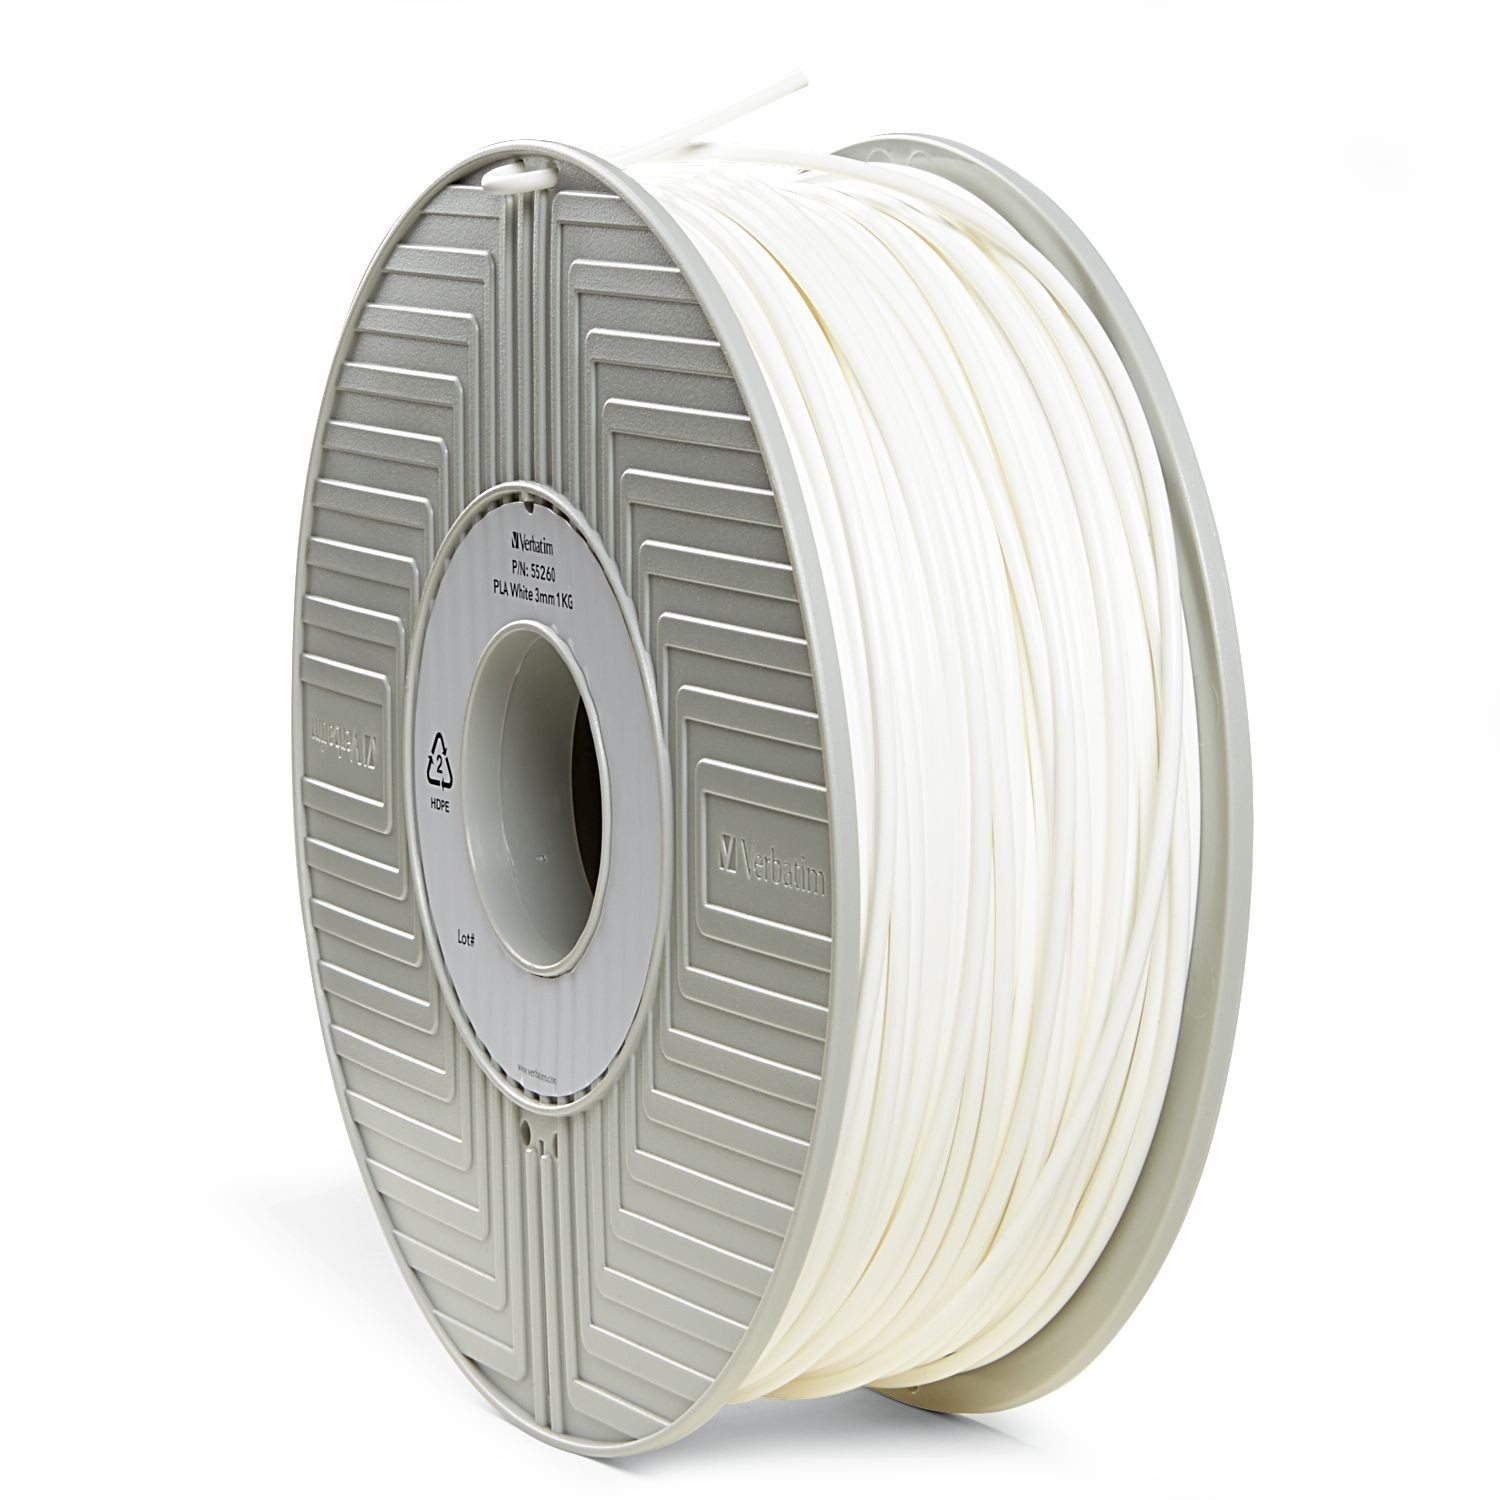 Verbatim 3D Printer PLA 3.00mm Filament - 1kg Reel (White) image